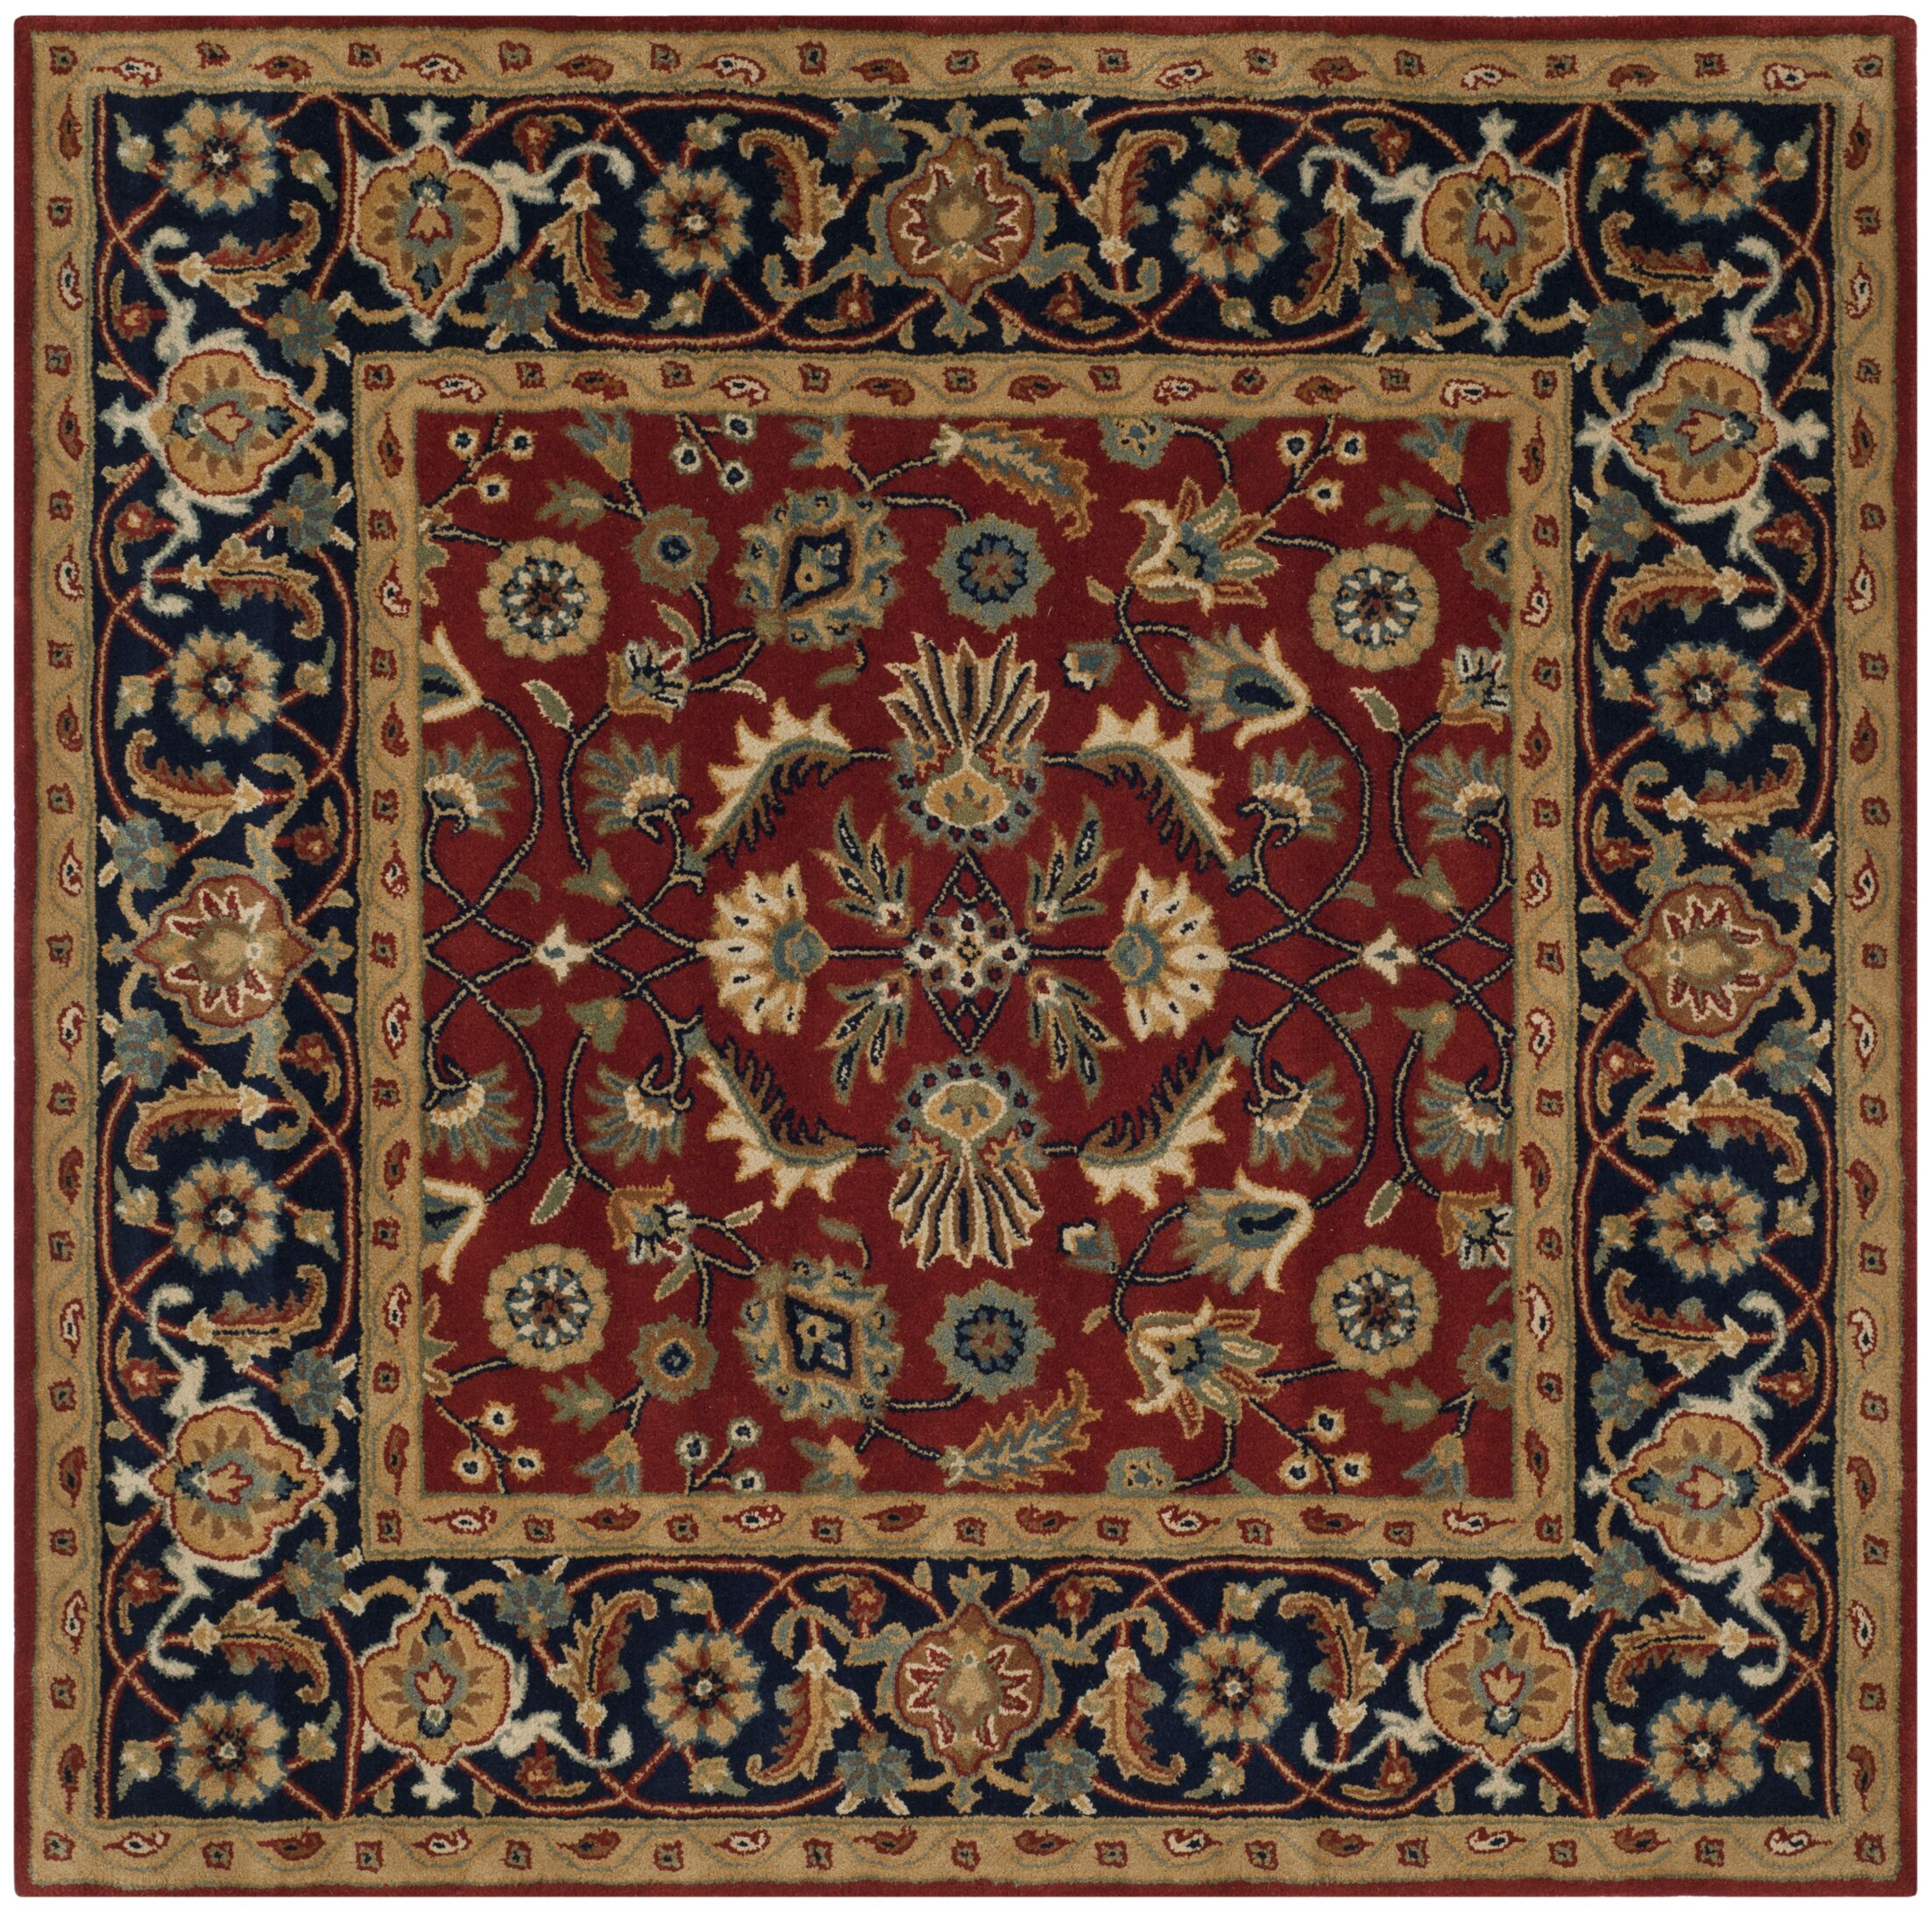 Badham Hand-Tufted Rust/Navy/Orange Area Rug Rug Size: Square 7'